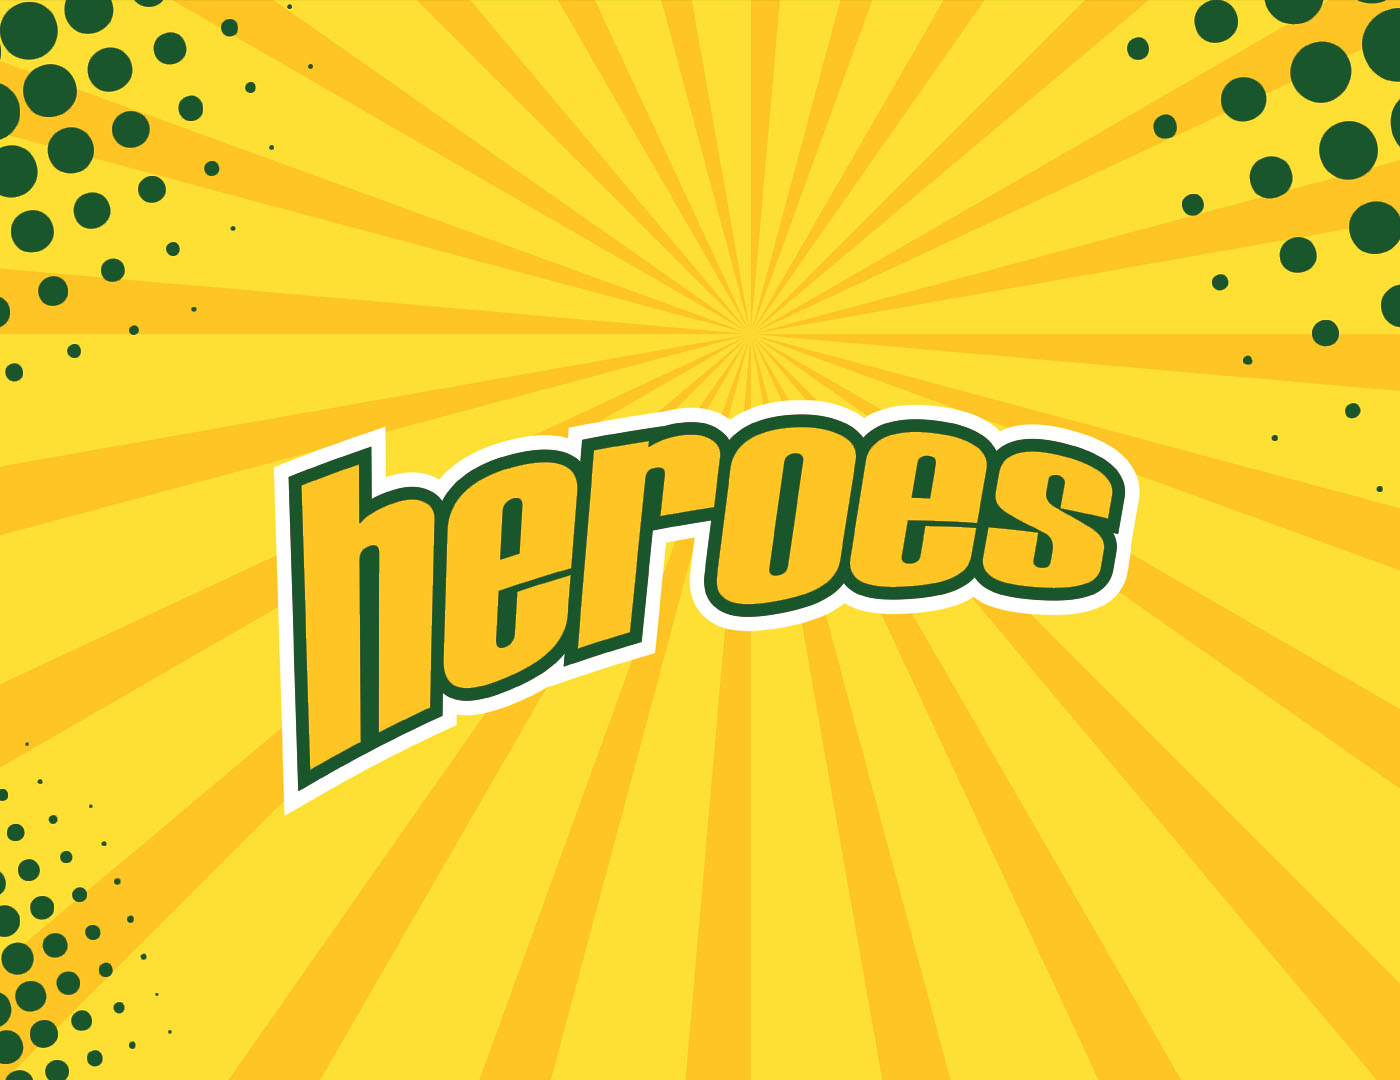 Collider Heroes - Superhero Movies and TV Shows Coming In 2016